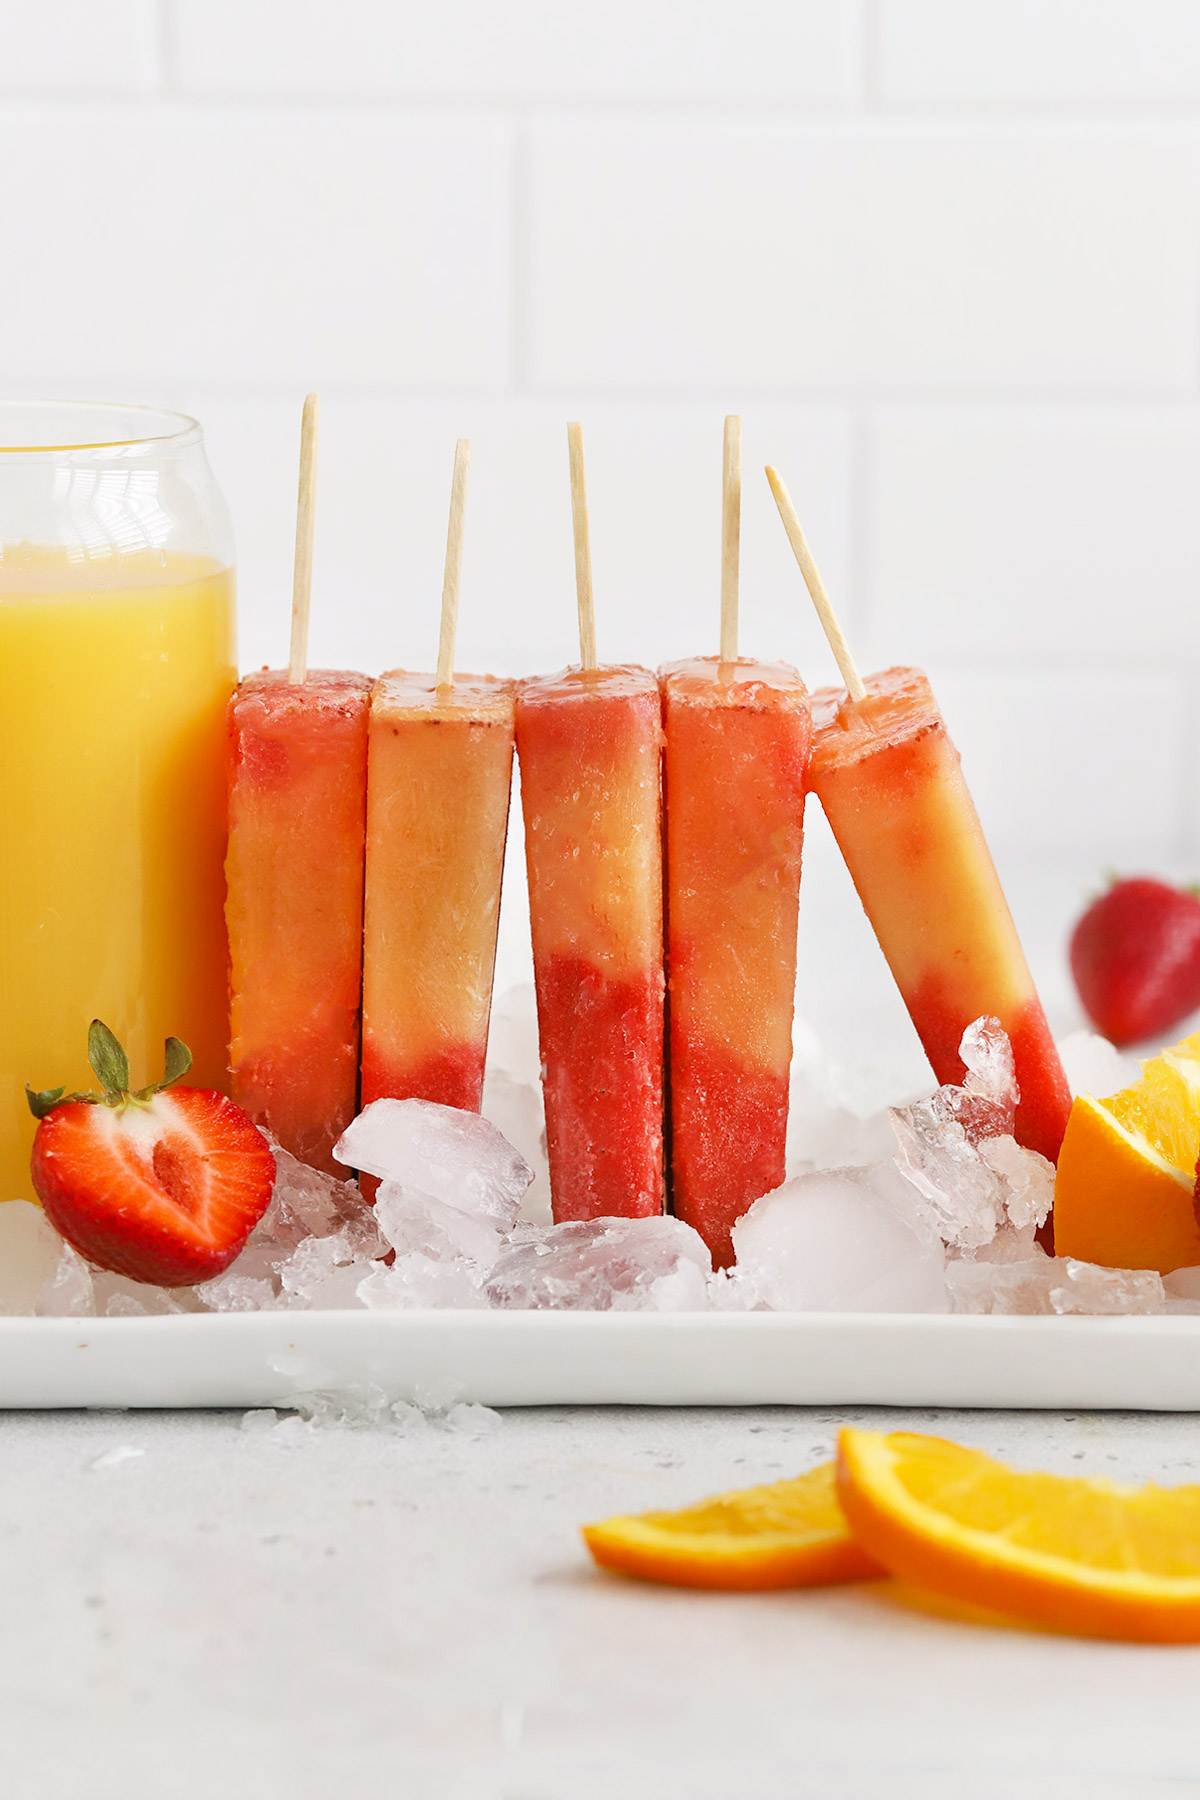 Front view of strawberry orange sunrise popsicles standing up in ice